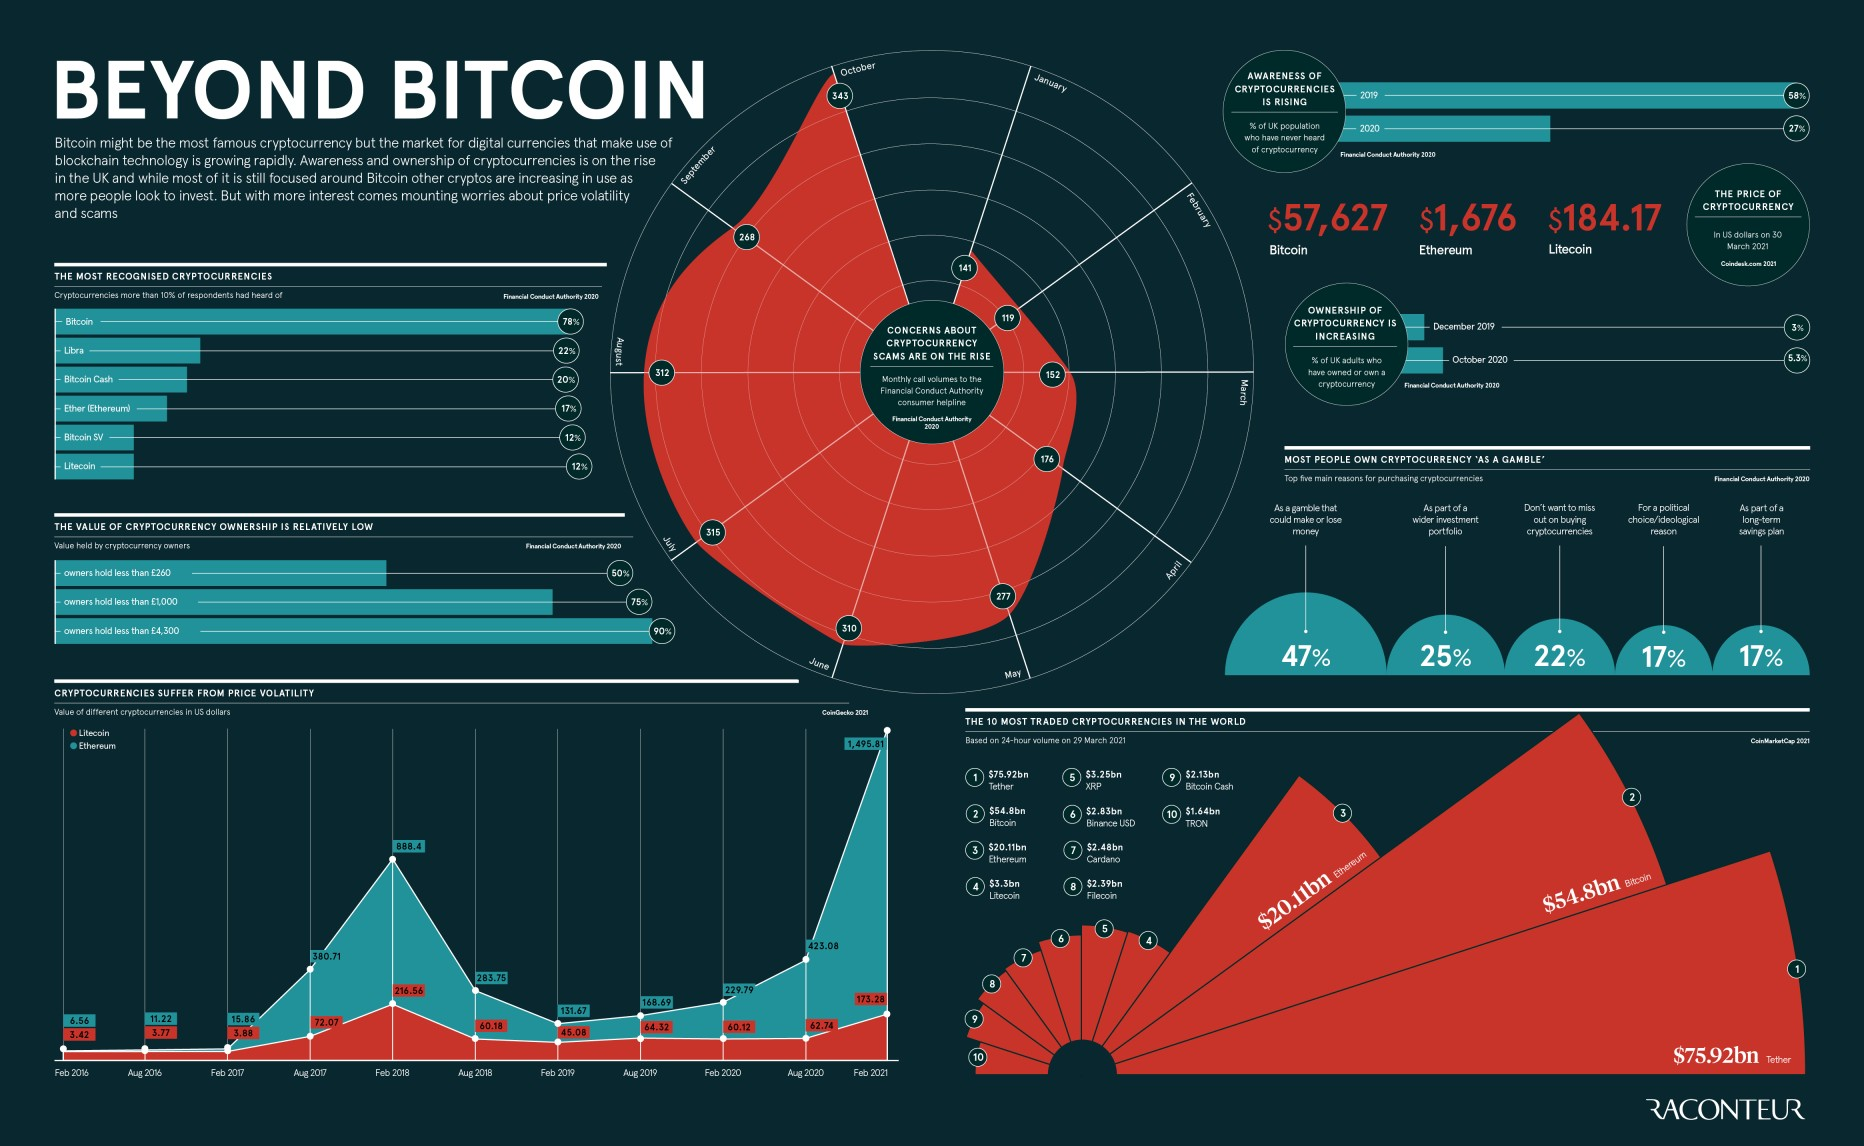 Trading Strategies infographic on bitcoin